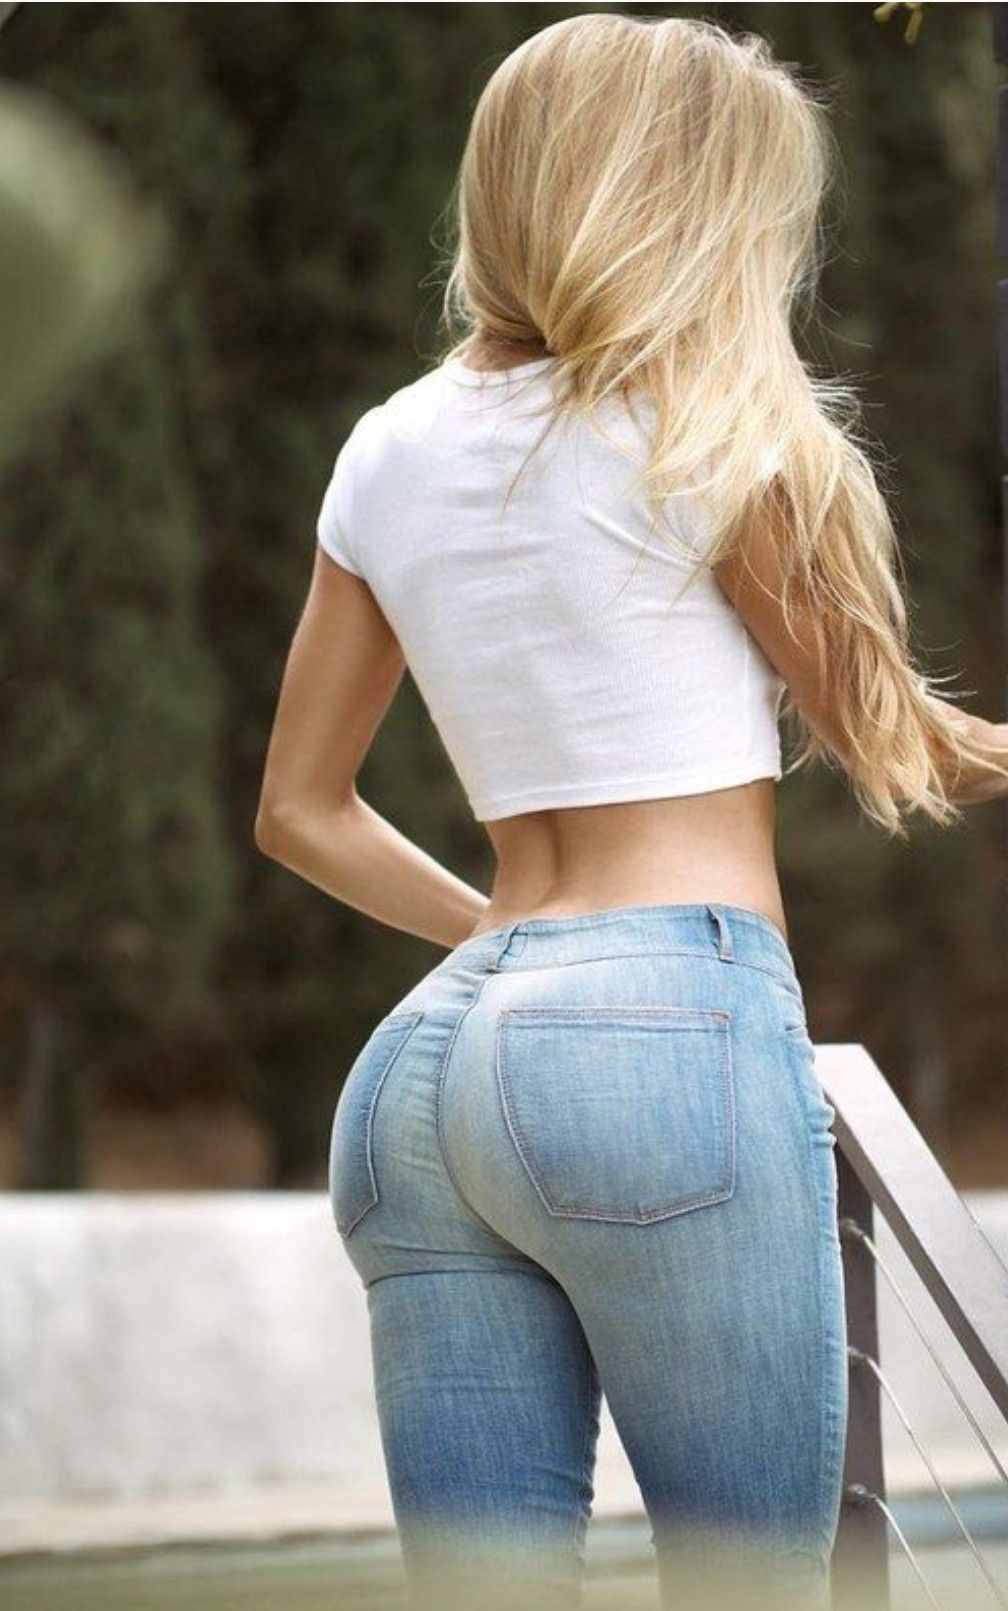 Sexy girls ass in jeans